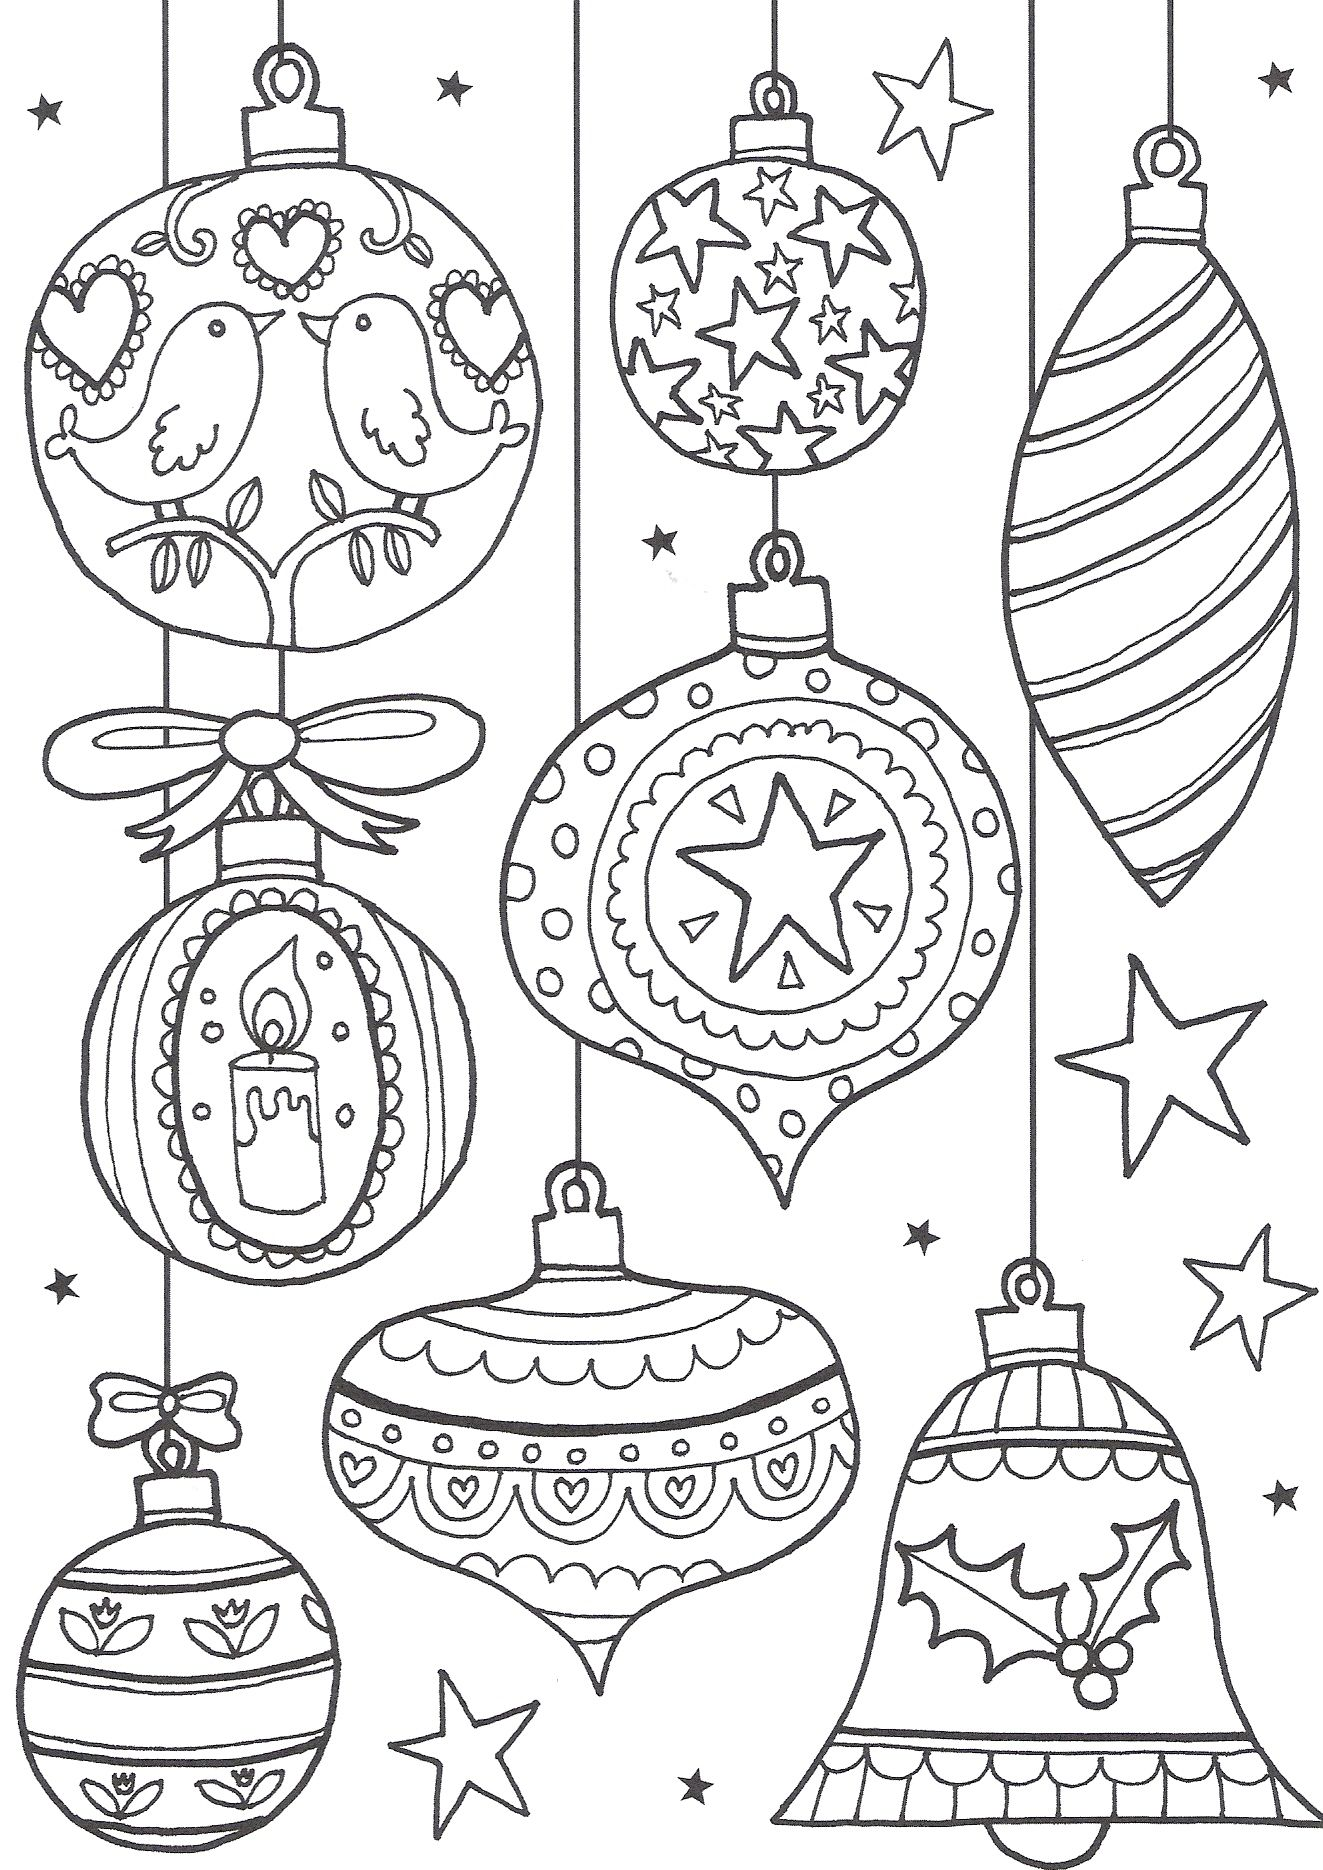 Christmas Coloring In Pages With Free Colouring For Adults The Ultimate Roundup